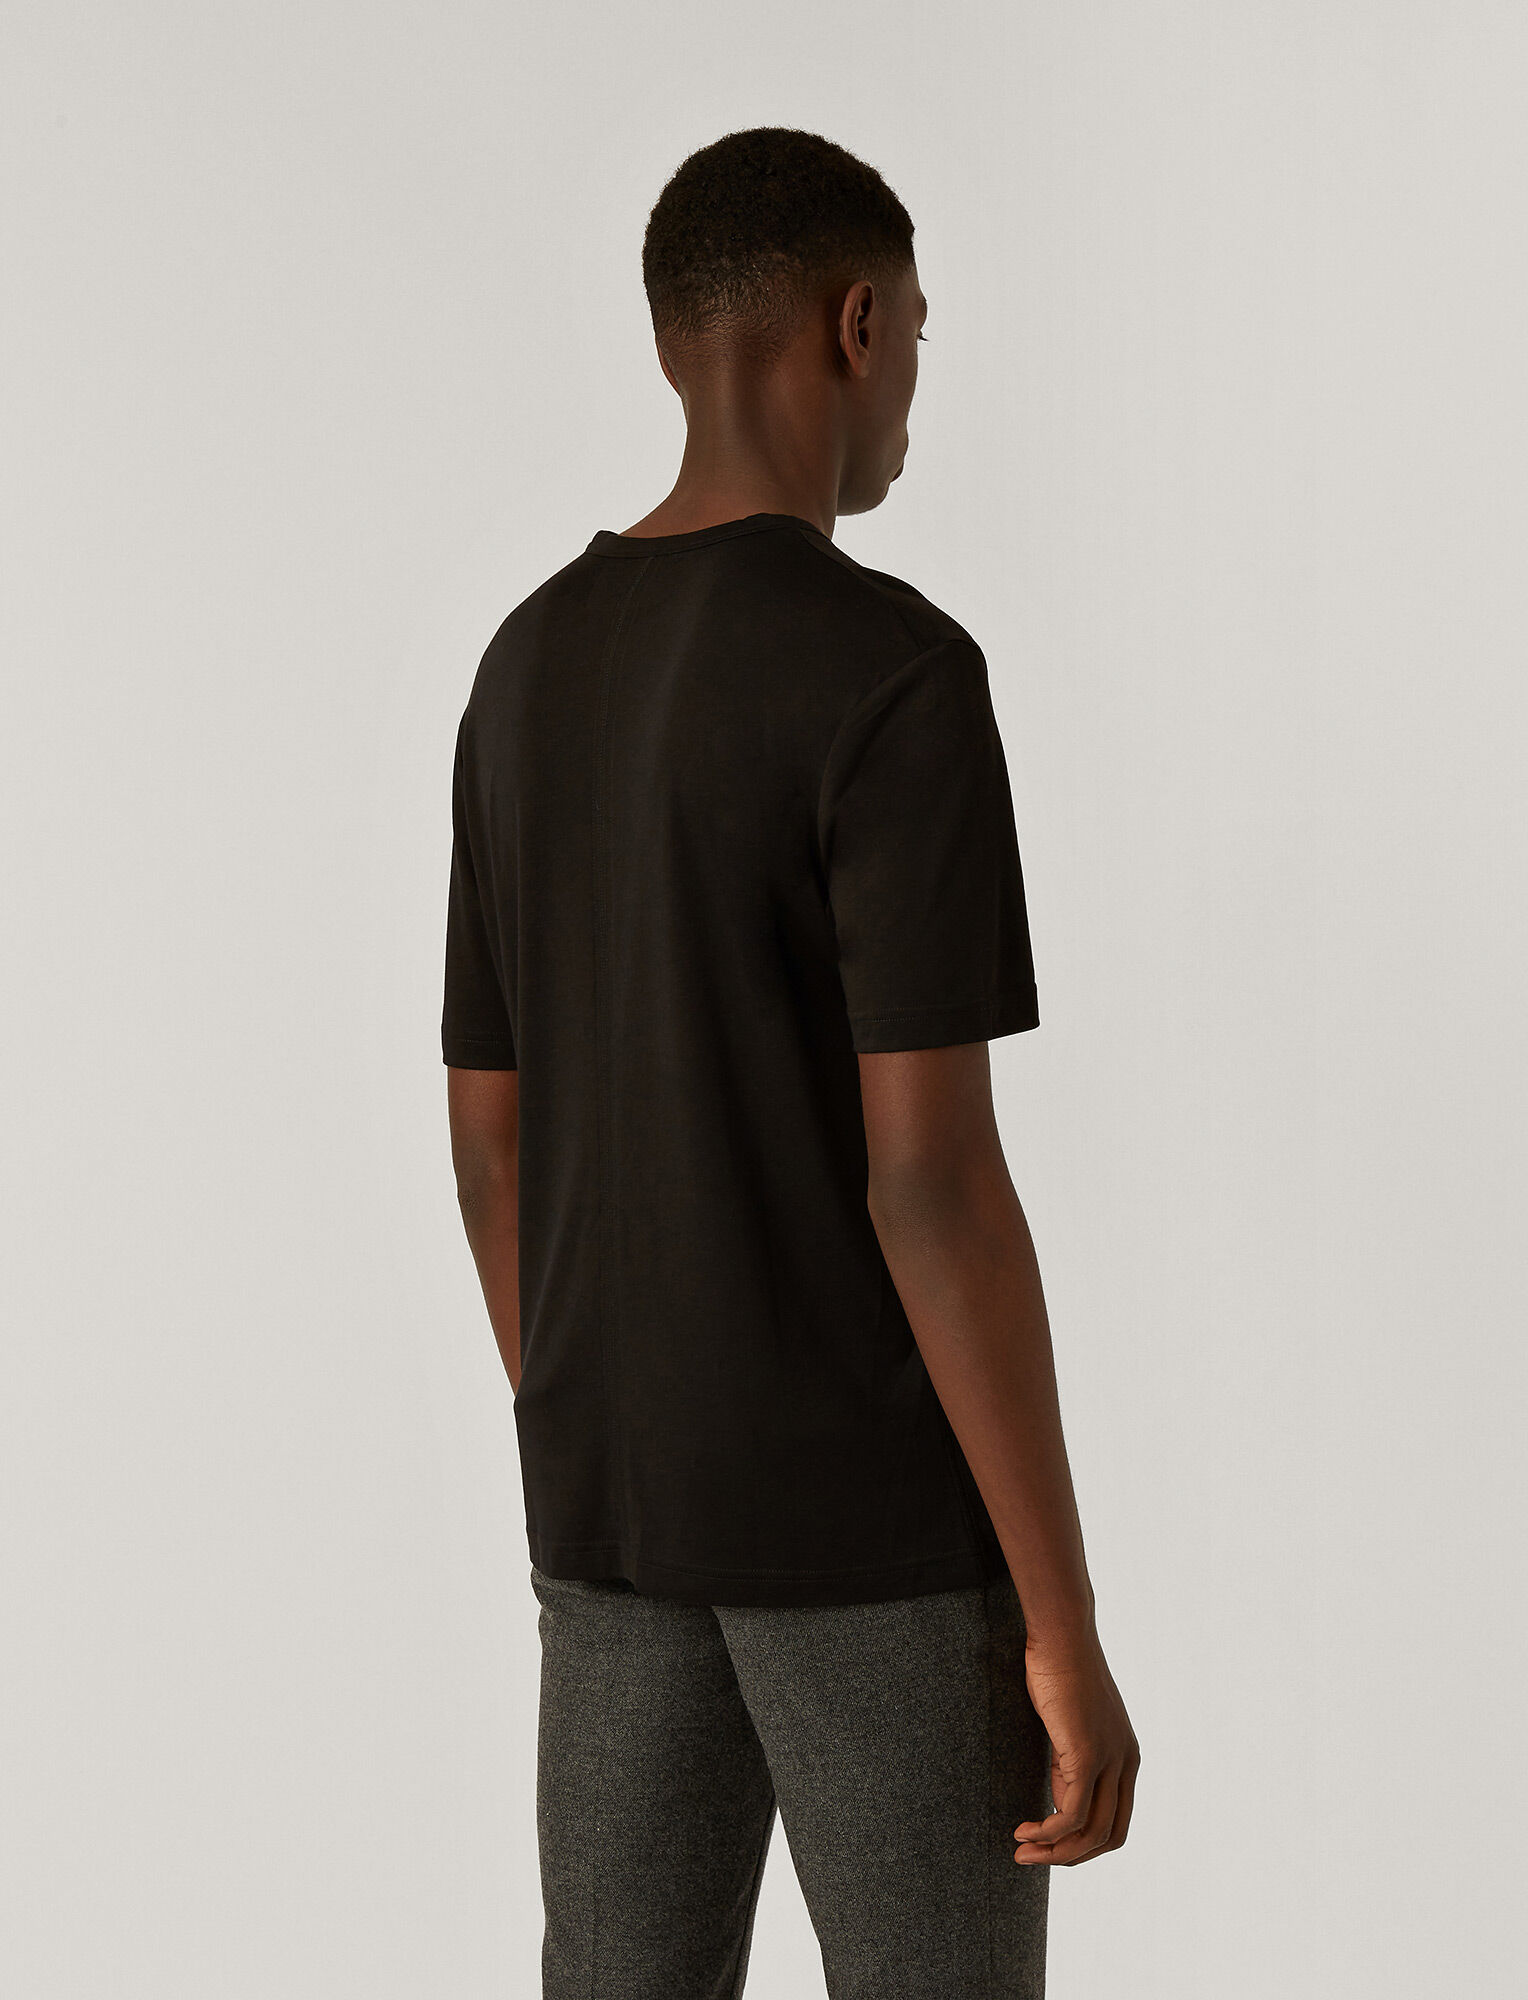 Joseph, Lyocell Jersey V Neck Tee, in BLACK